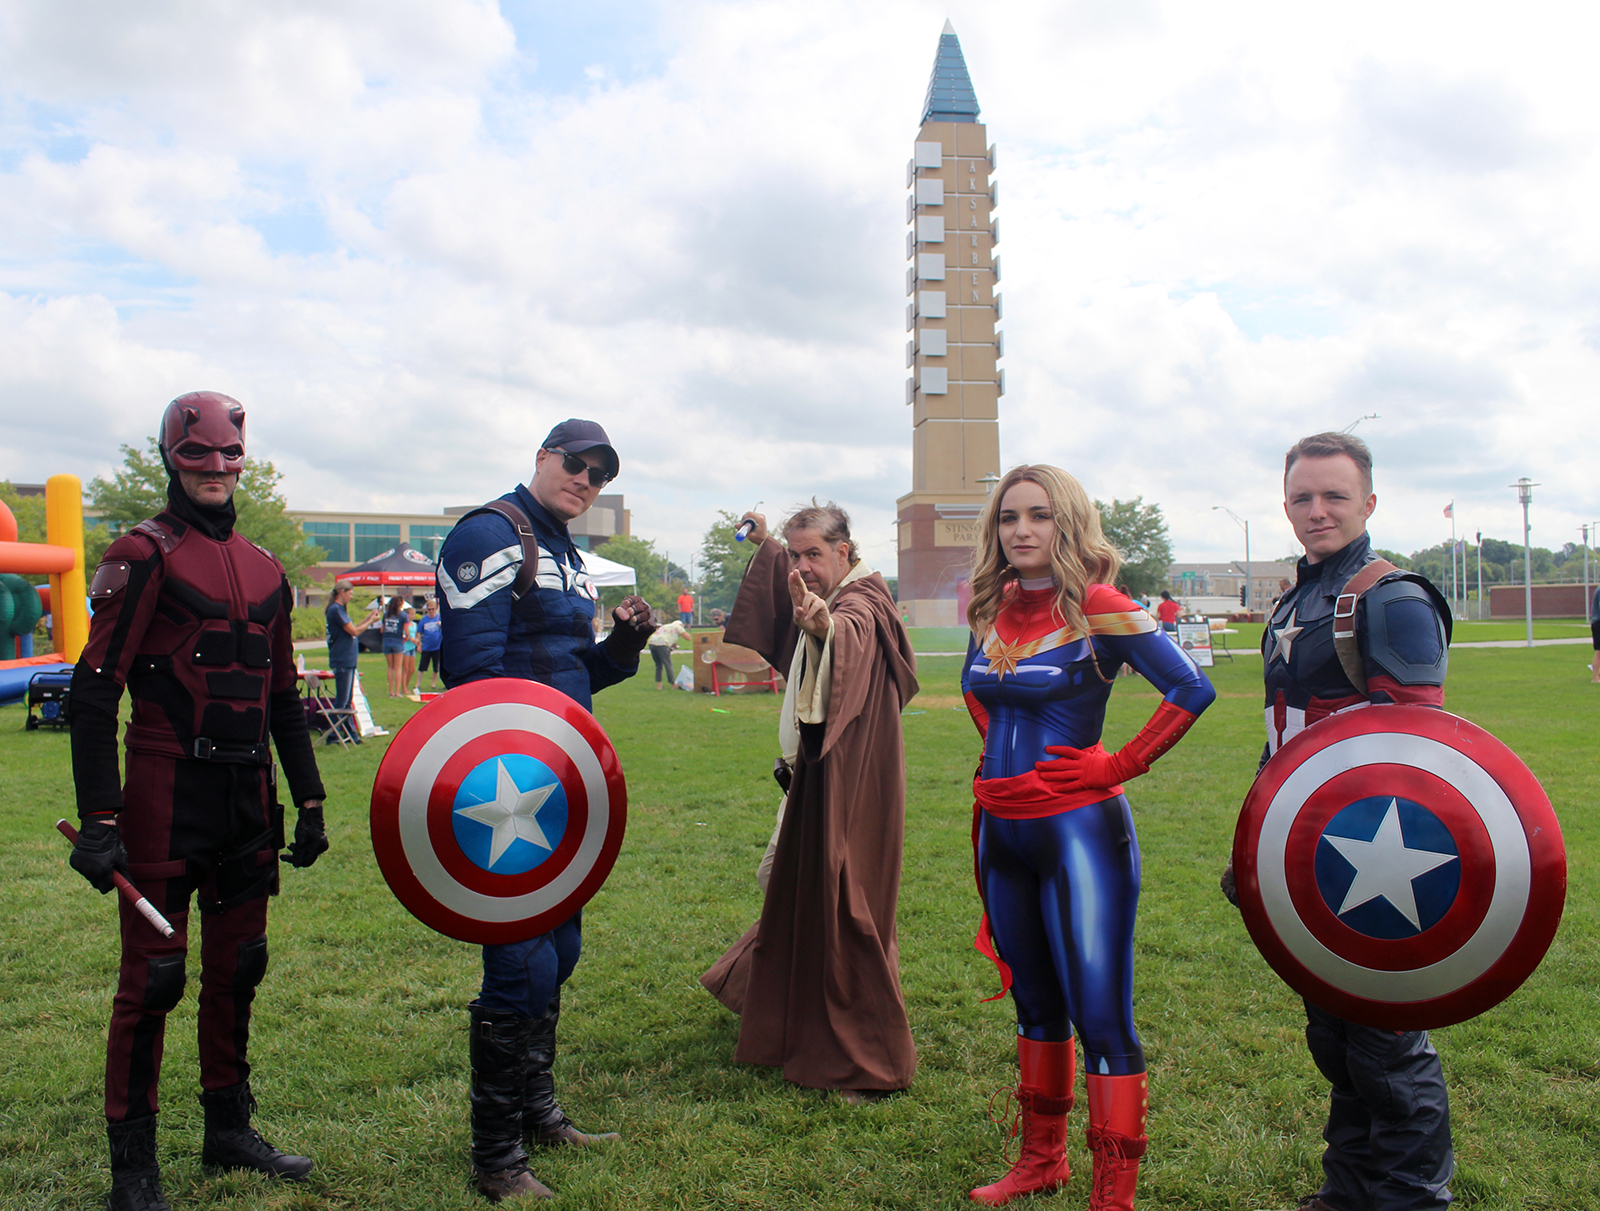 Superheroes from Midwest TeamHooman take a break from handing out free comic books to take a group photo at Stinson Park during CASA for Douglas County's Superhero Festival on Saturday, Aug. 26, 2019. (Photo by Scott Stewart)